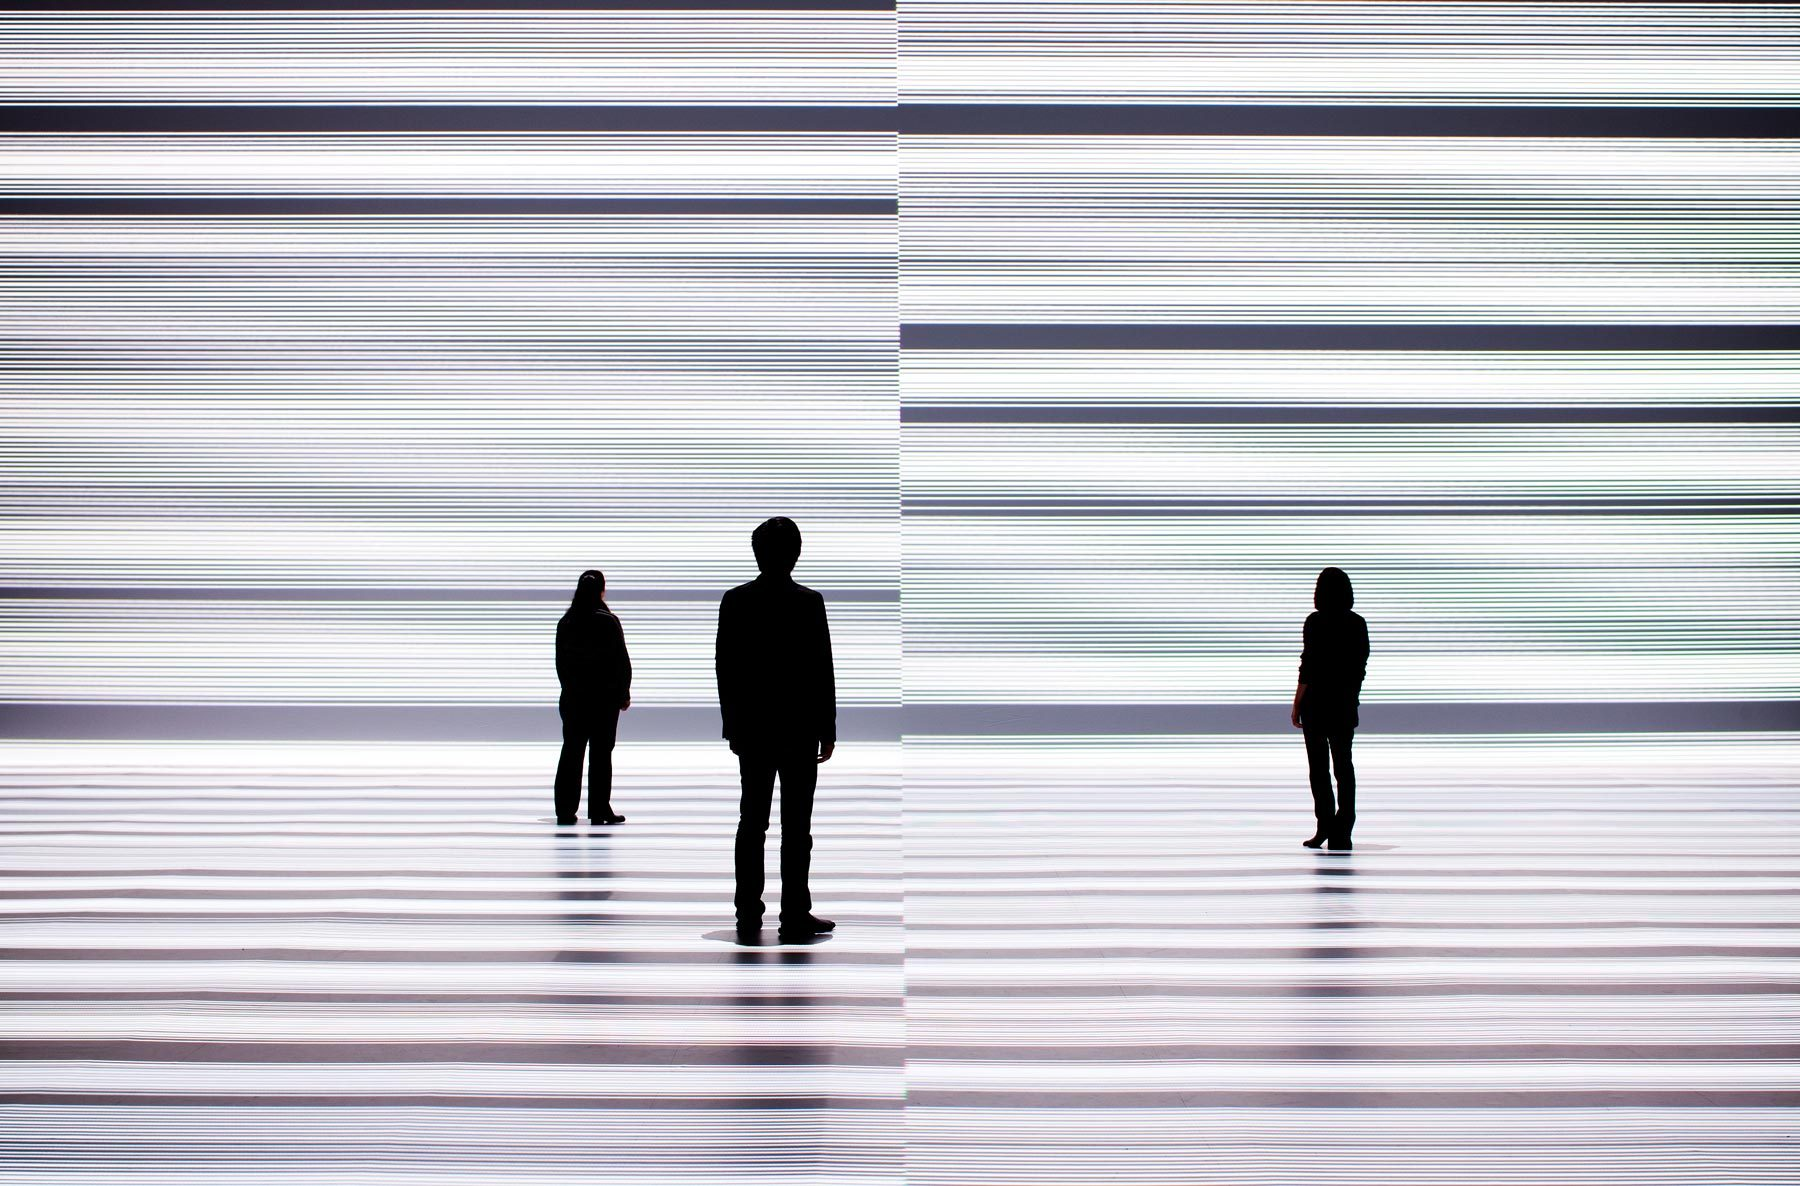 Grasping the Infinite Through Order: Ryoji Ikeda's the transfinite